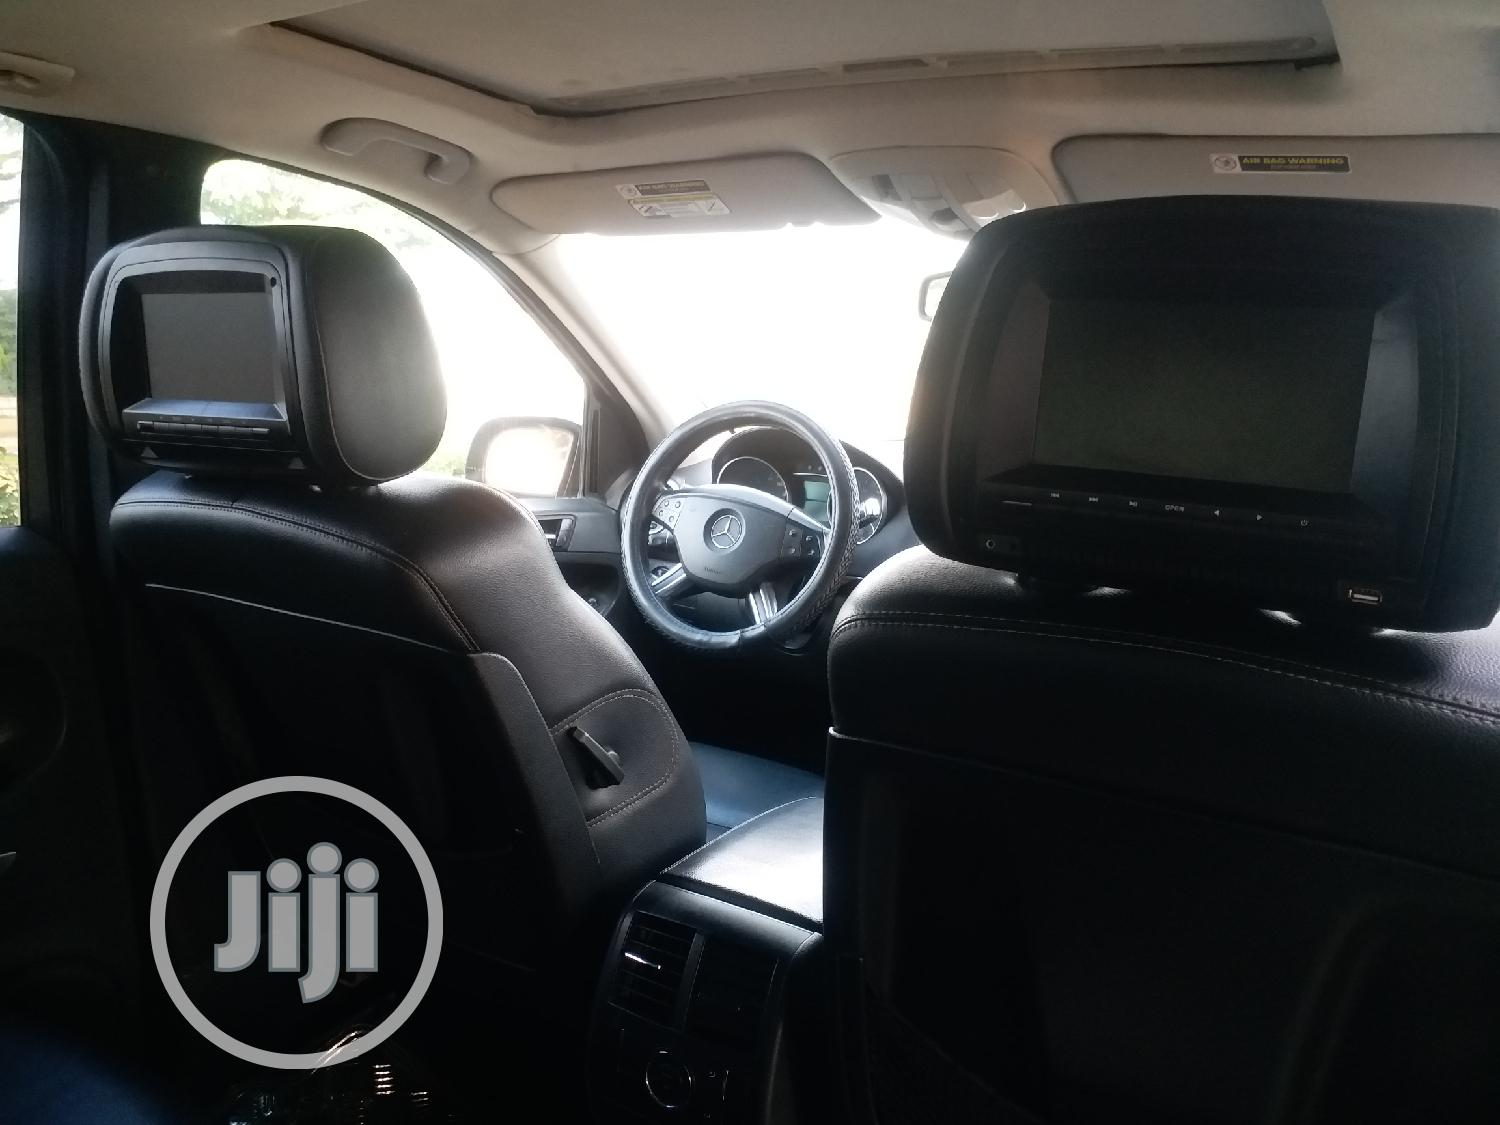 Mercedes-Benz GL Class 2007 GL 450 Black | Cars for sale in Central Business Dis, Abuja (FCT) State, Nigeria